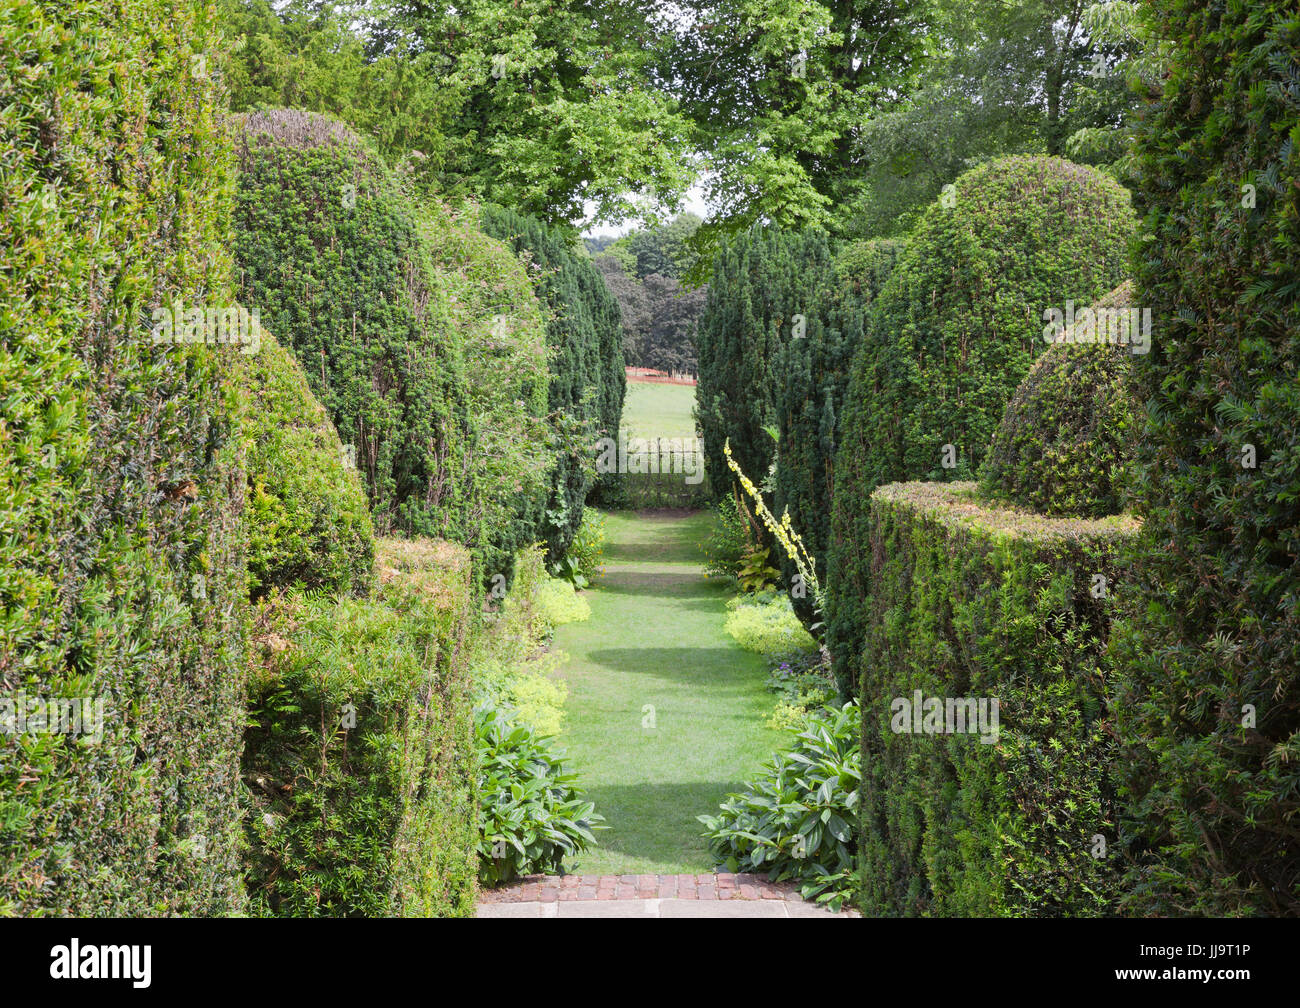 Walking path through a wall of trimmed green hedge in a topiary garden . - Stock Image